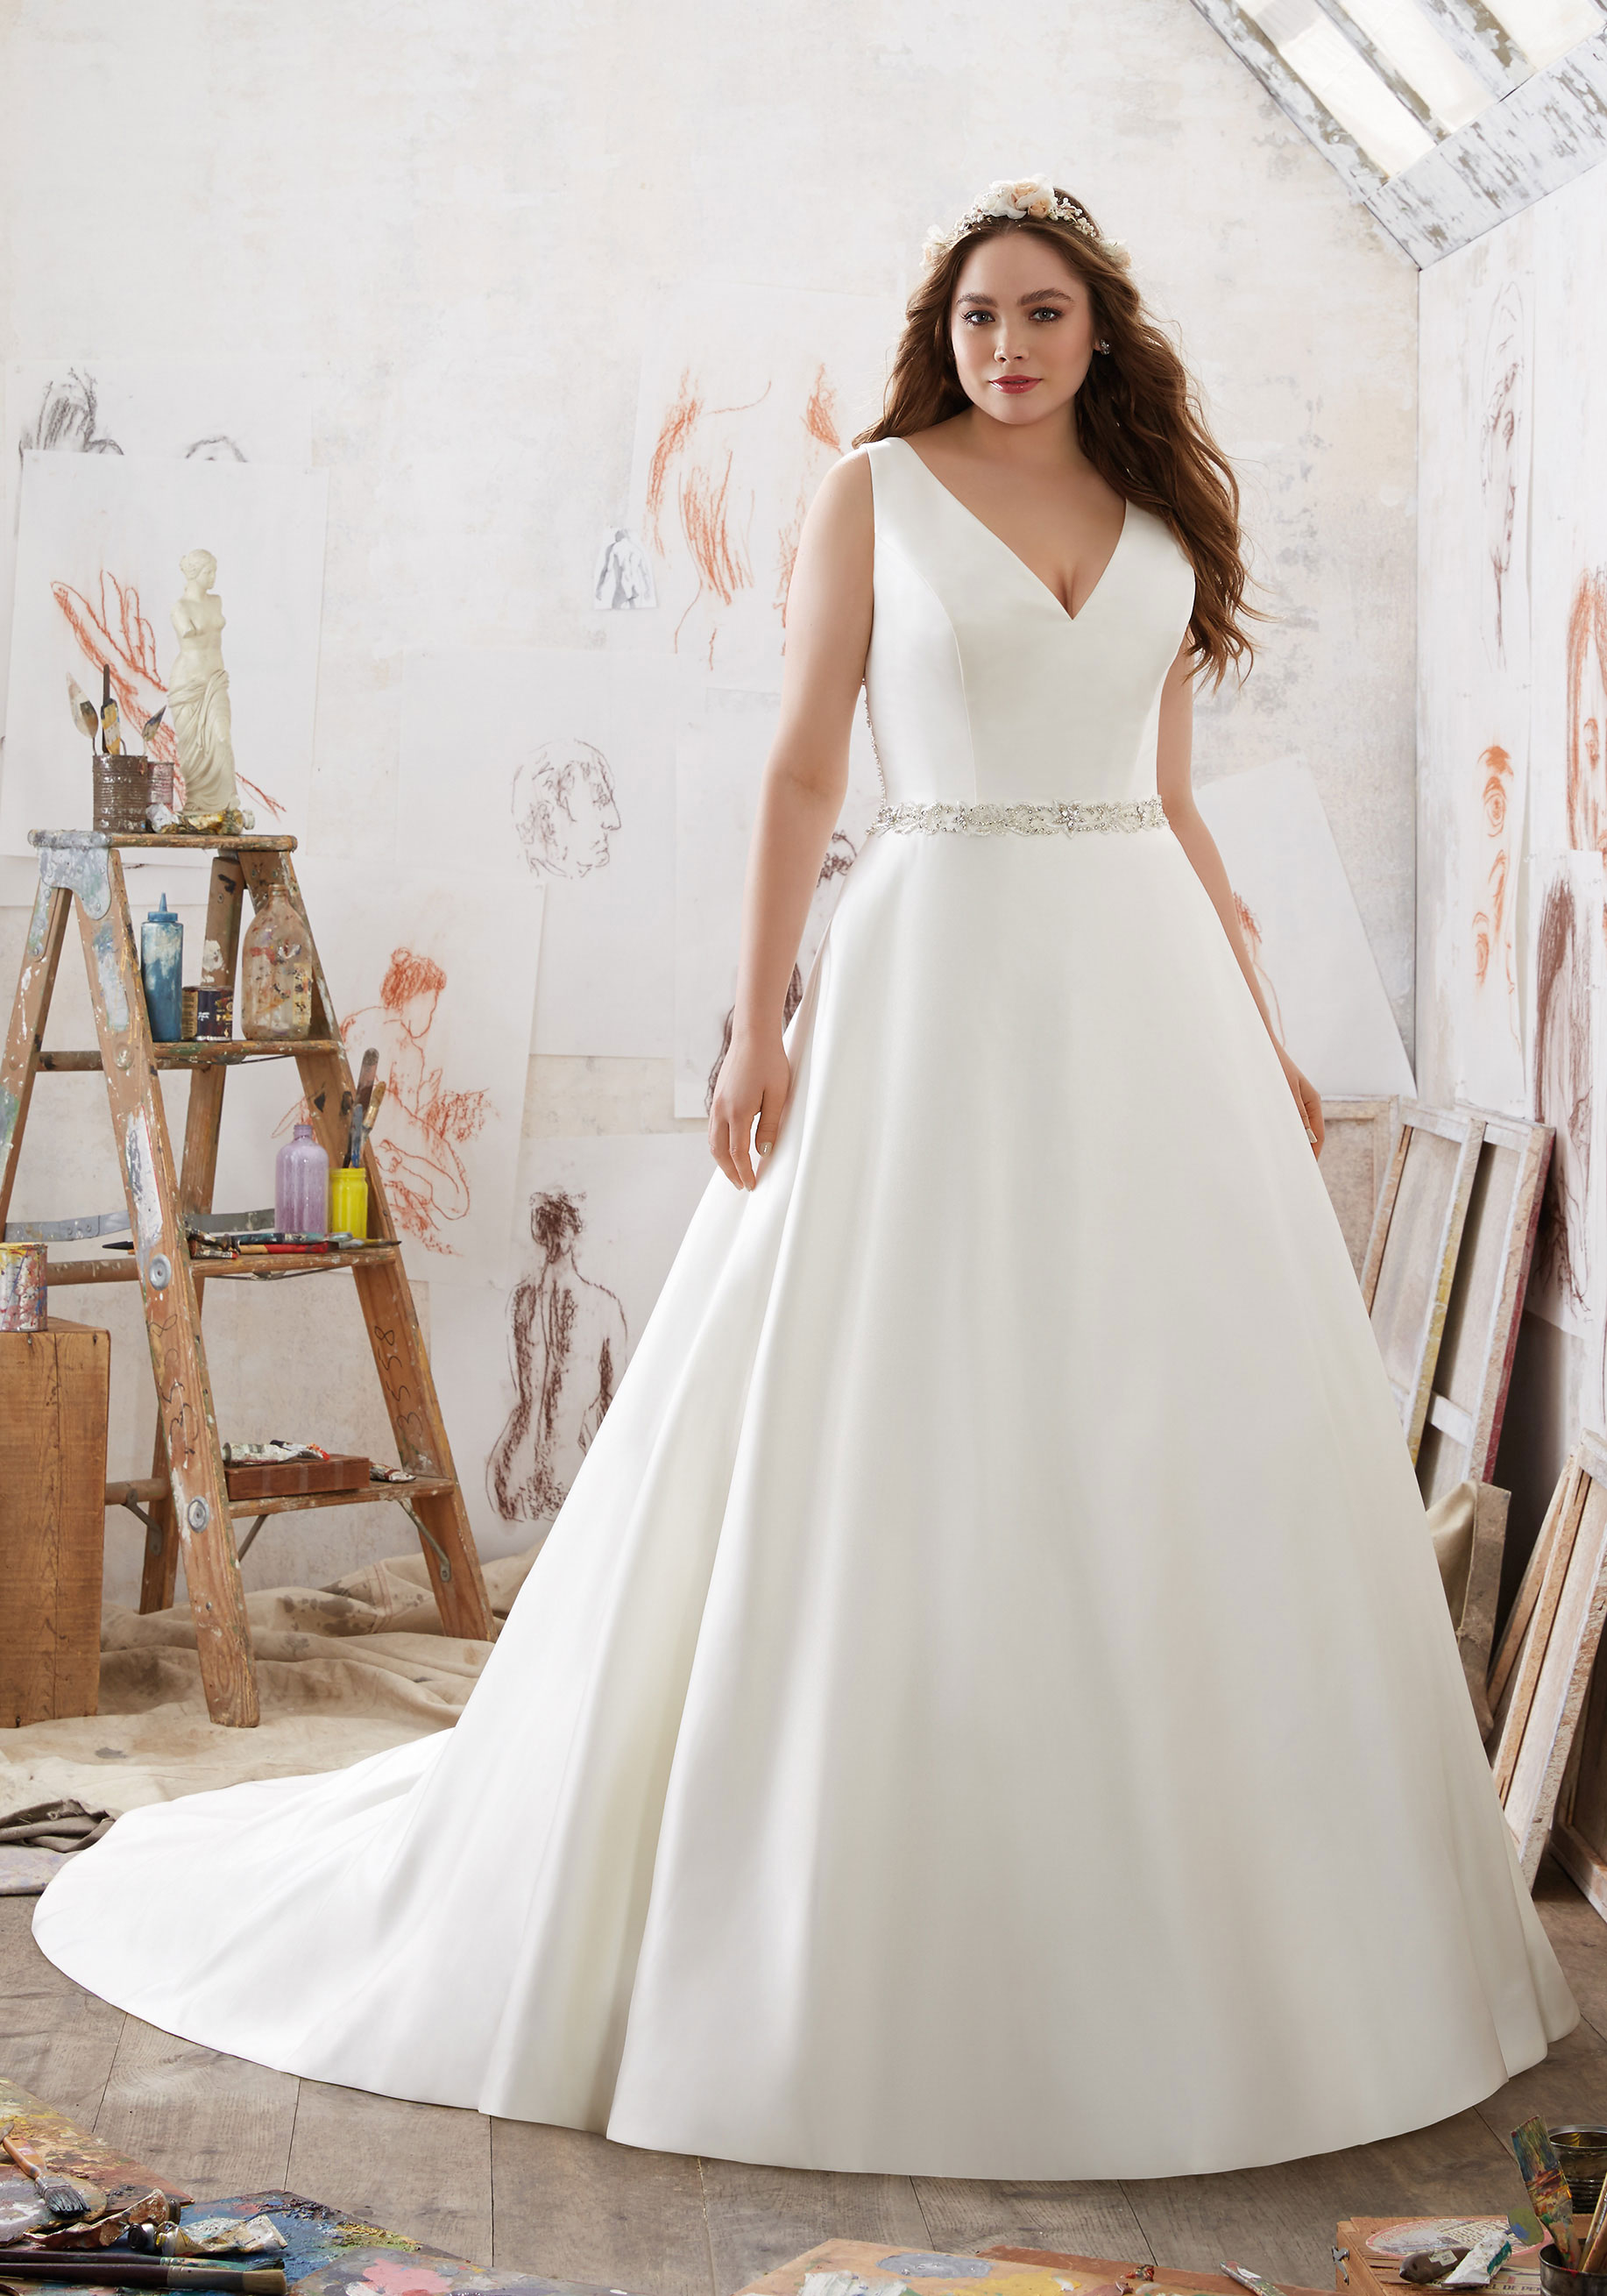 819775629b541 Wedding dress